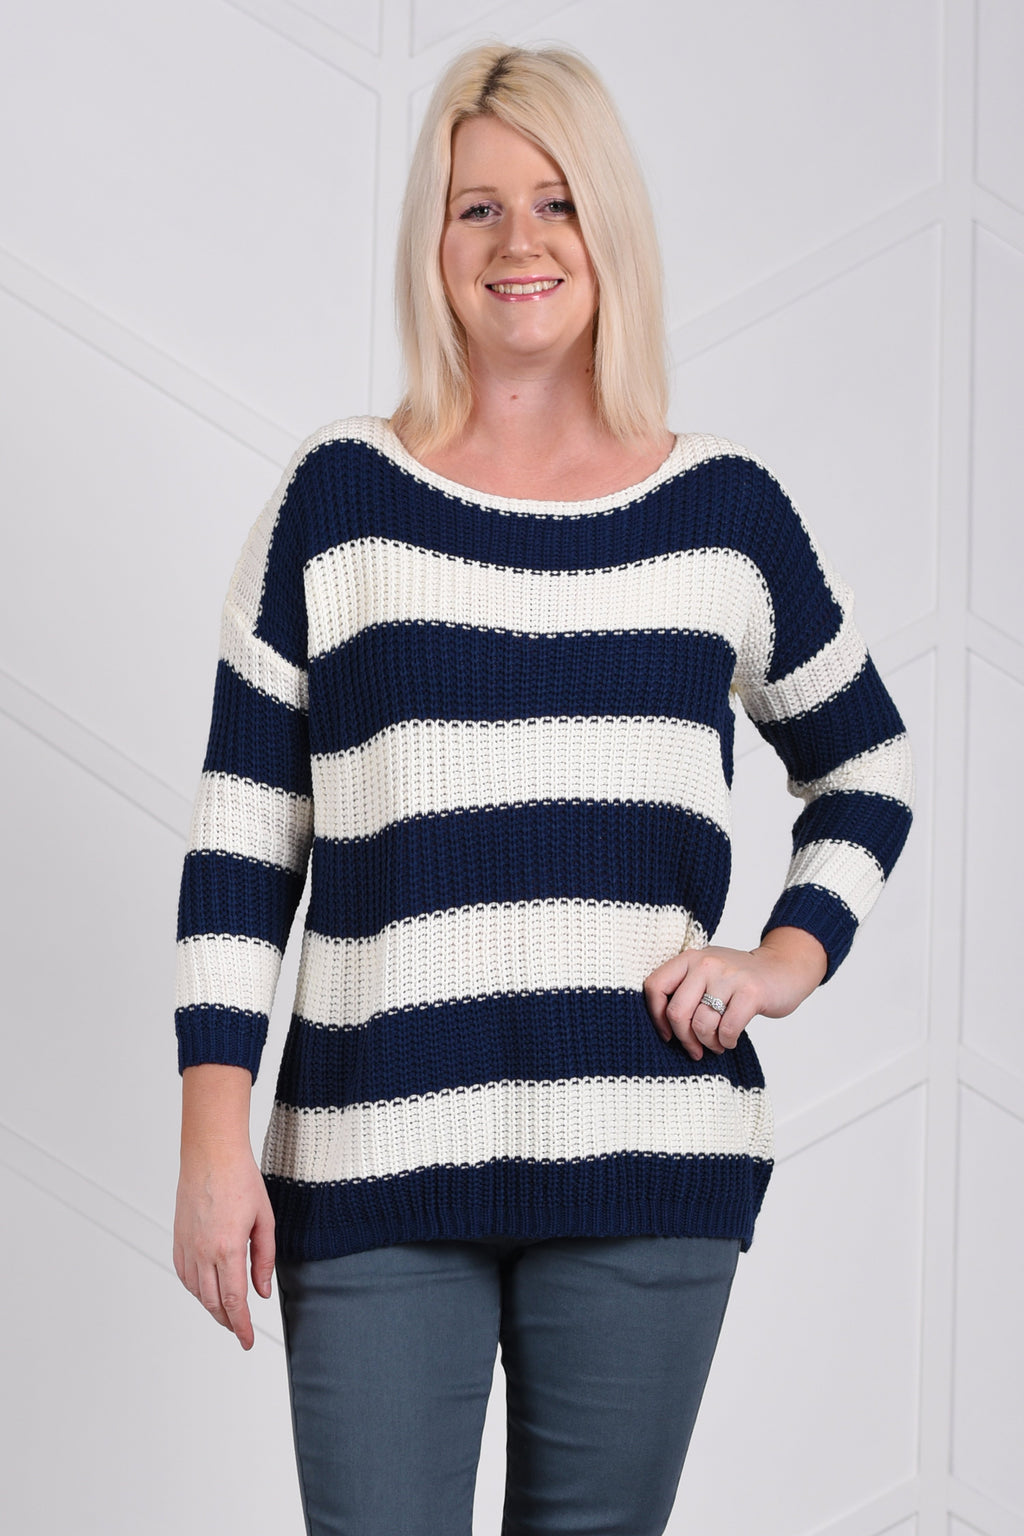 Mary Striped Sweater - women's boutique clothing Strong Confident You